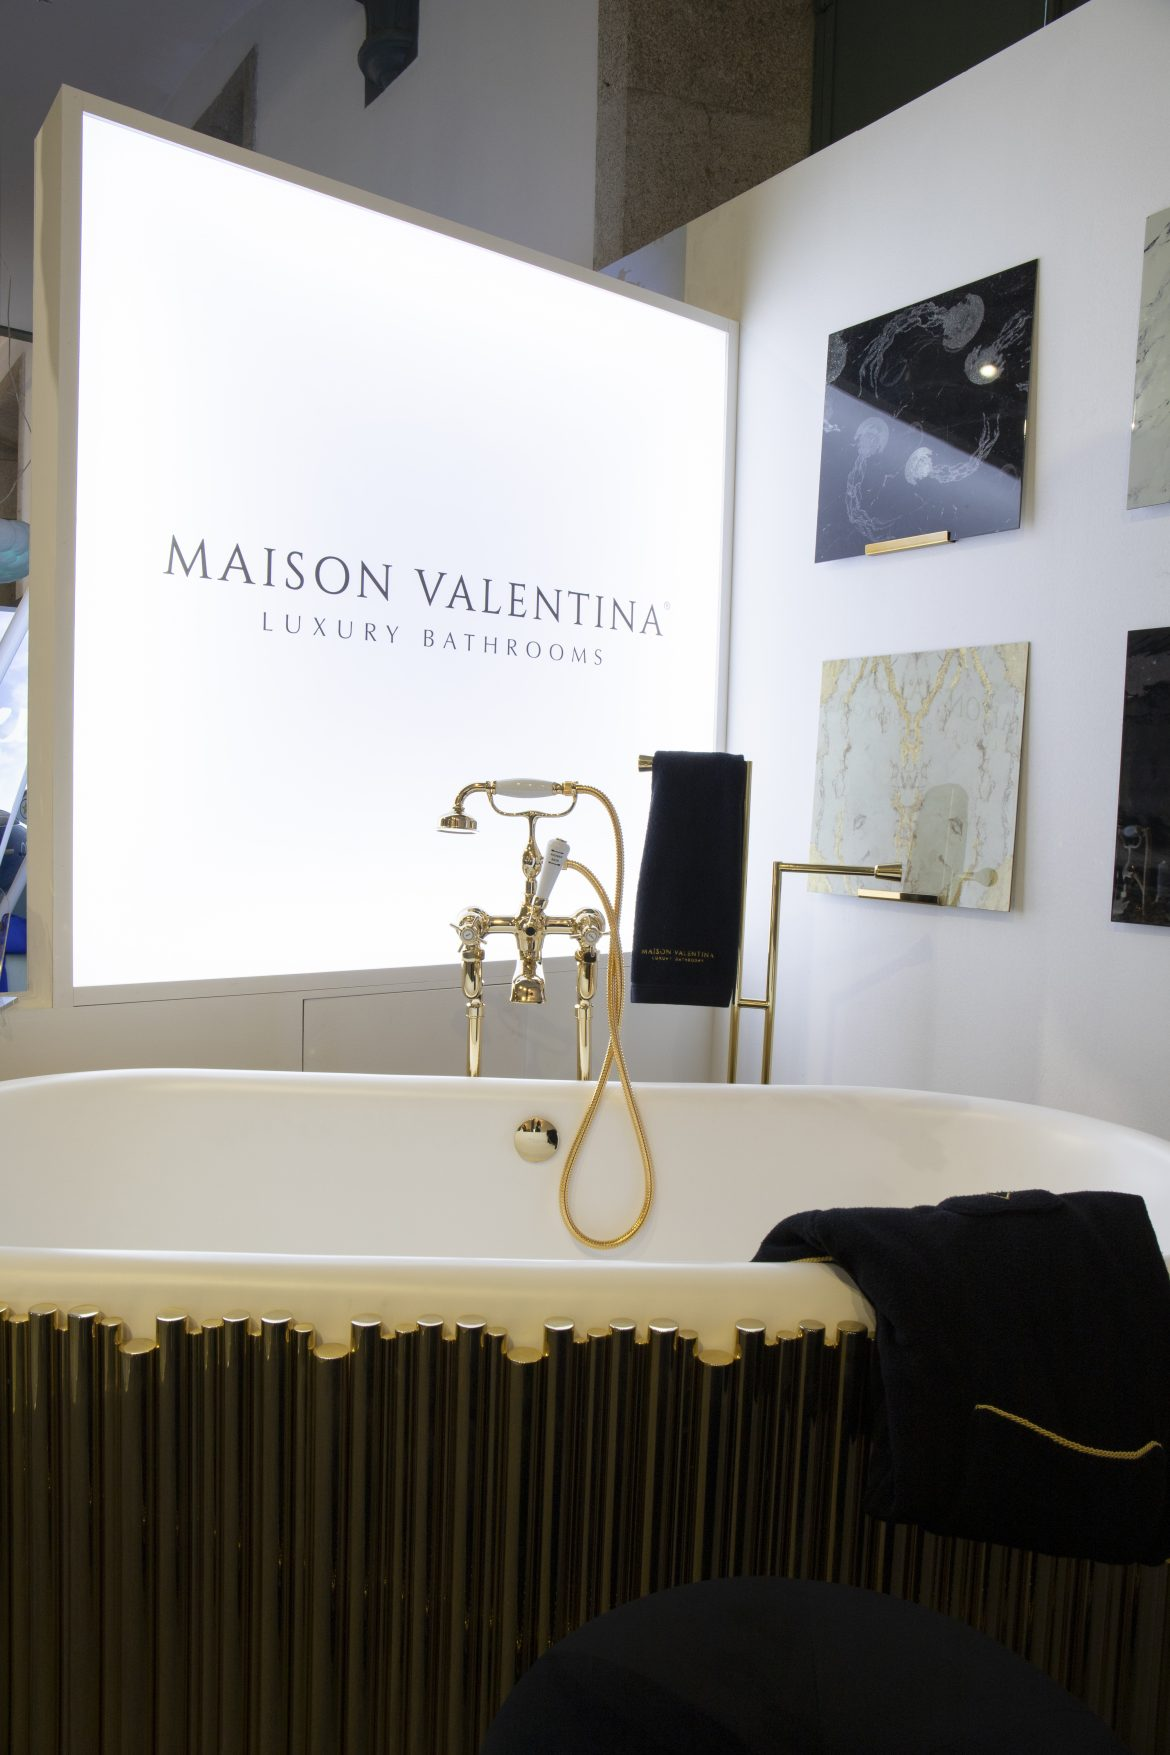 Discover The Best Bathroom Selection At Portugal Home Week 2019 portugal home week 2019 Discover The Best Bathroom Selection At Portugal Home Week 2019 IMG 7441